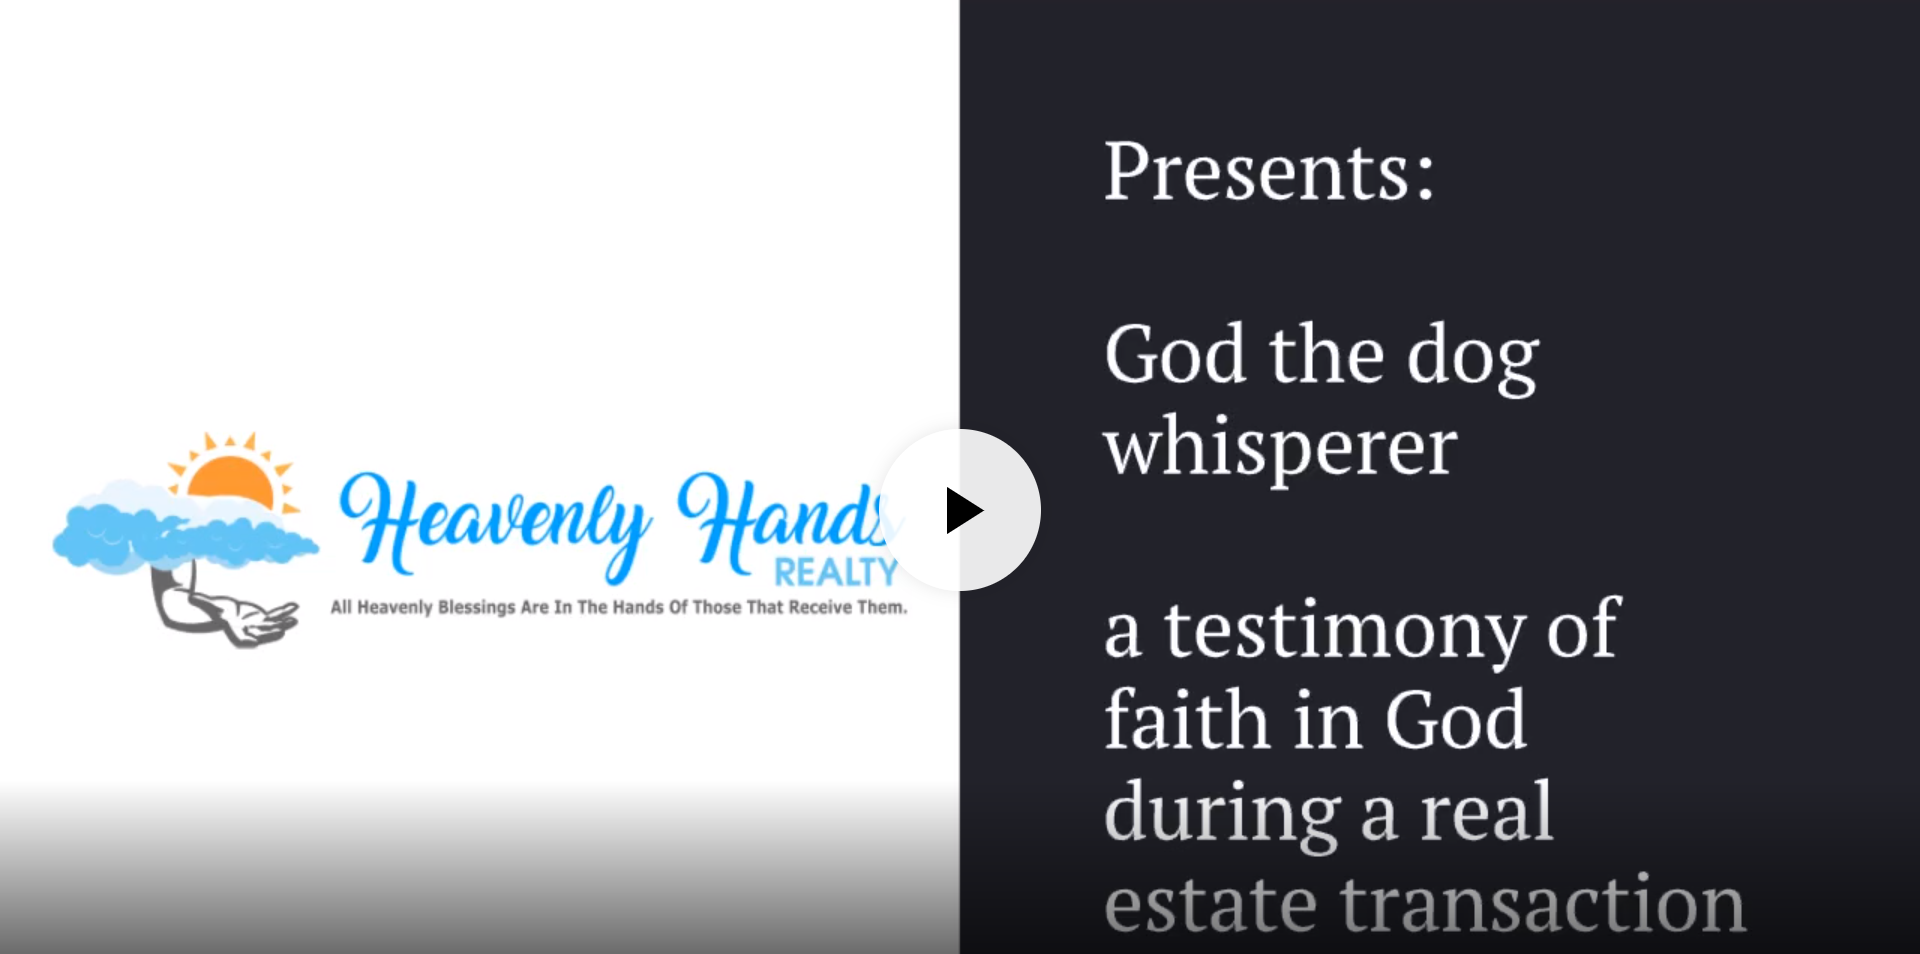 A Video testimony of Faith In God From Our Real Estate Agent